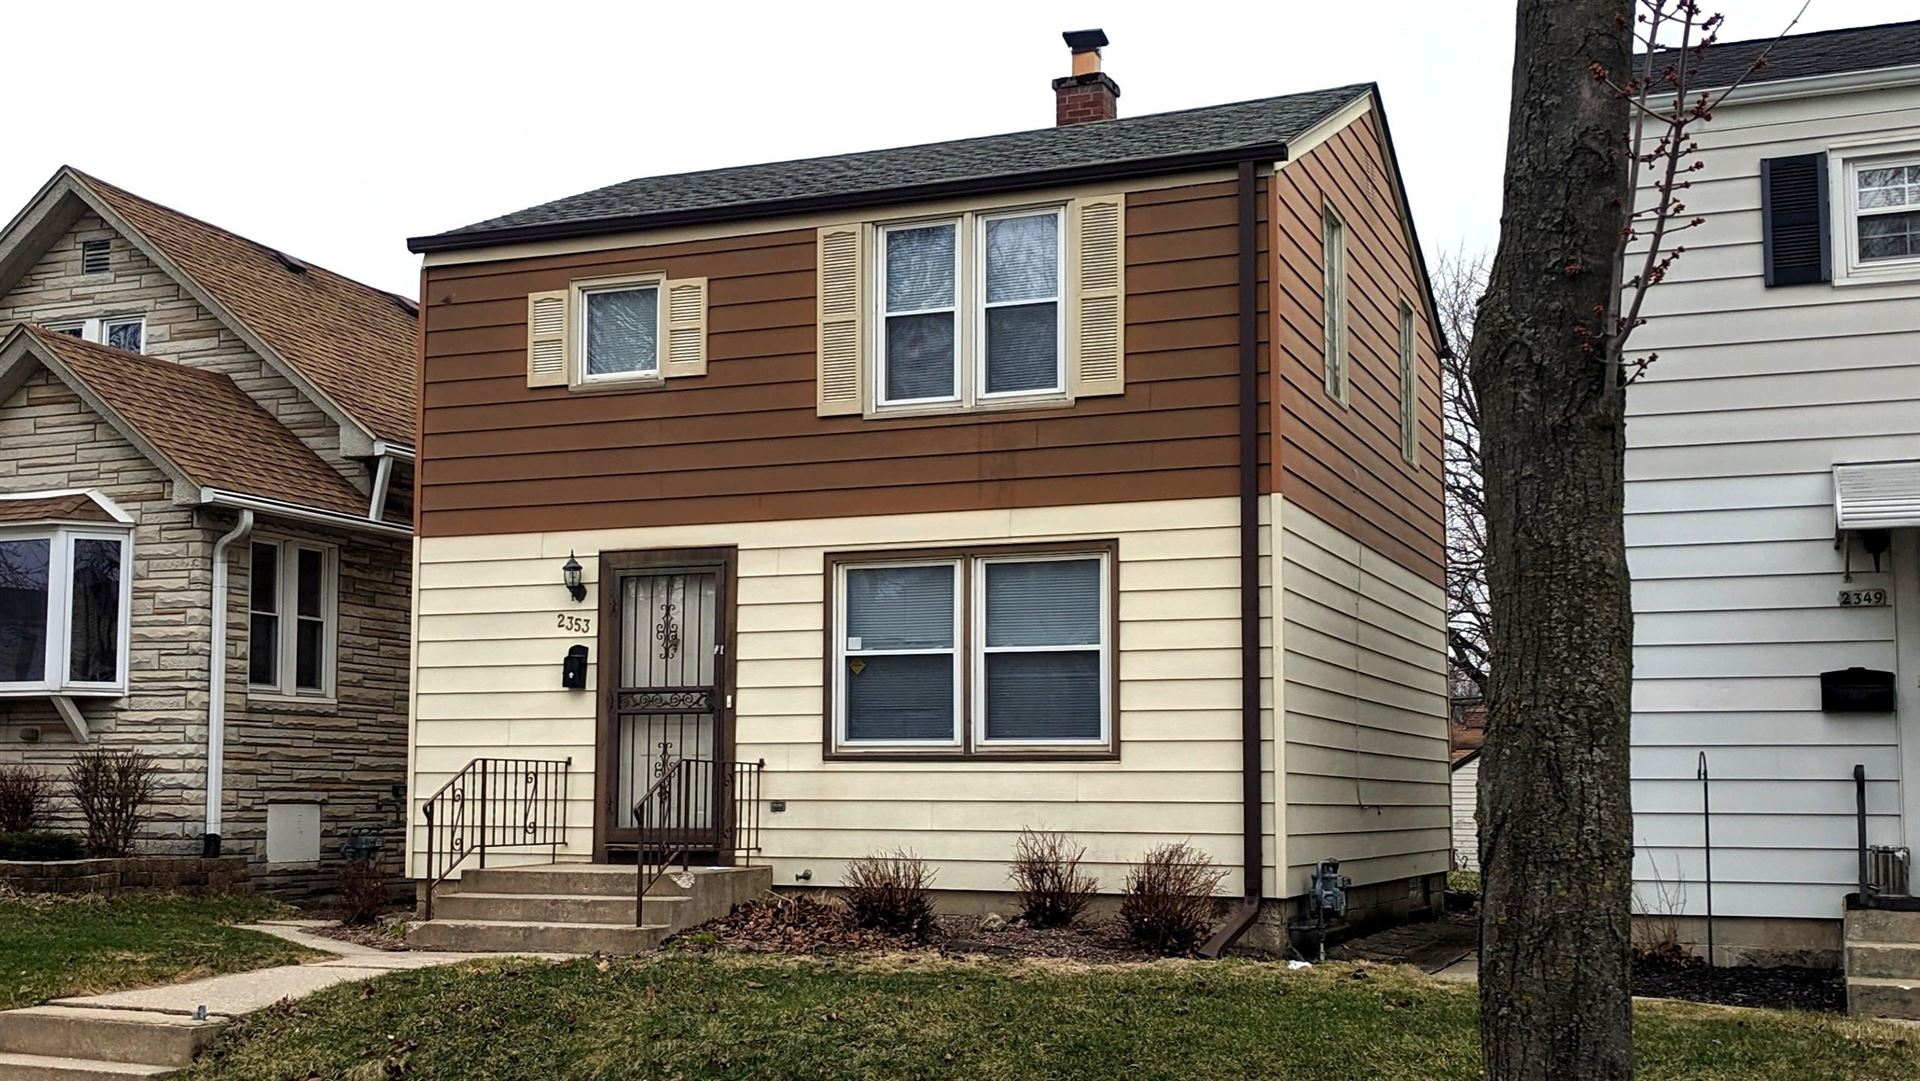 2353 S 77th St, West Allis, WI 53219 - #: 1683920